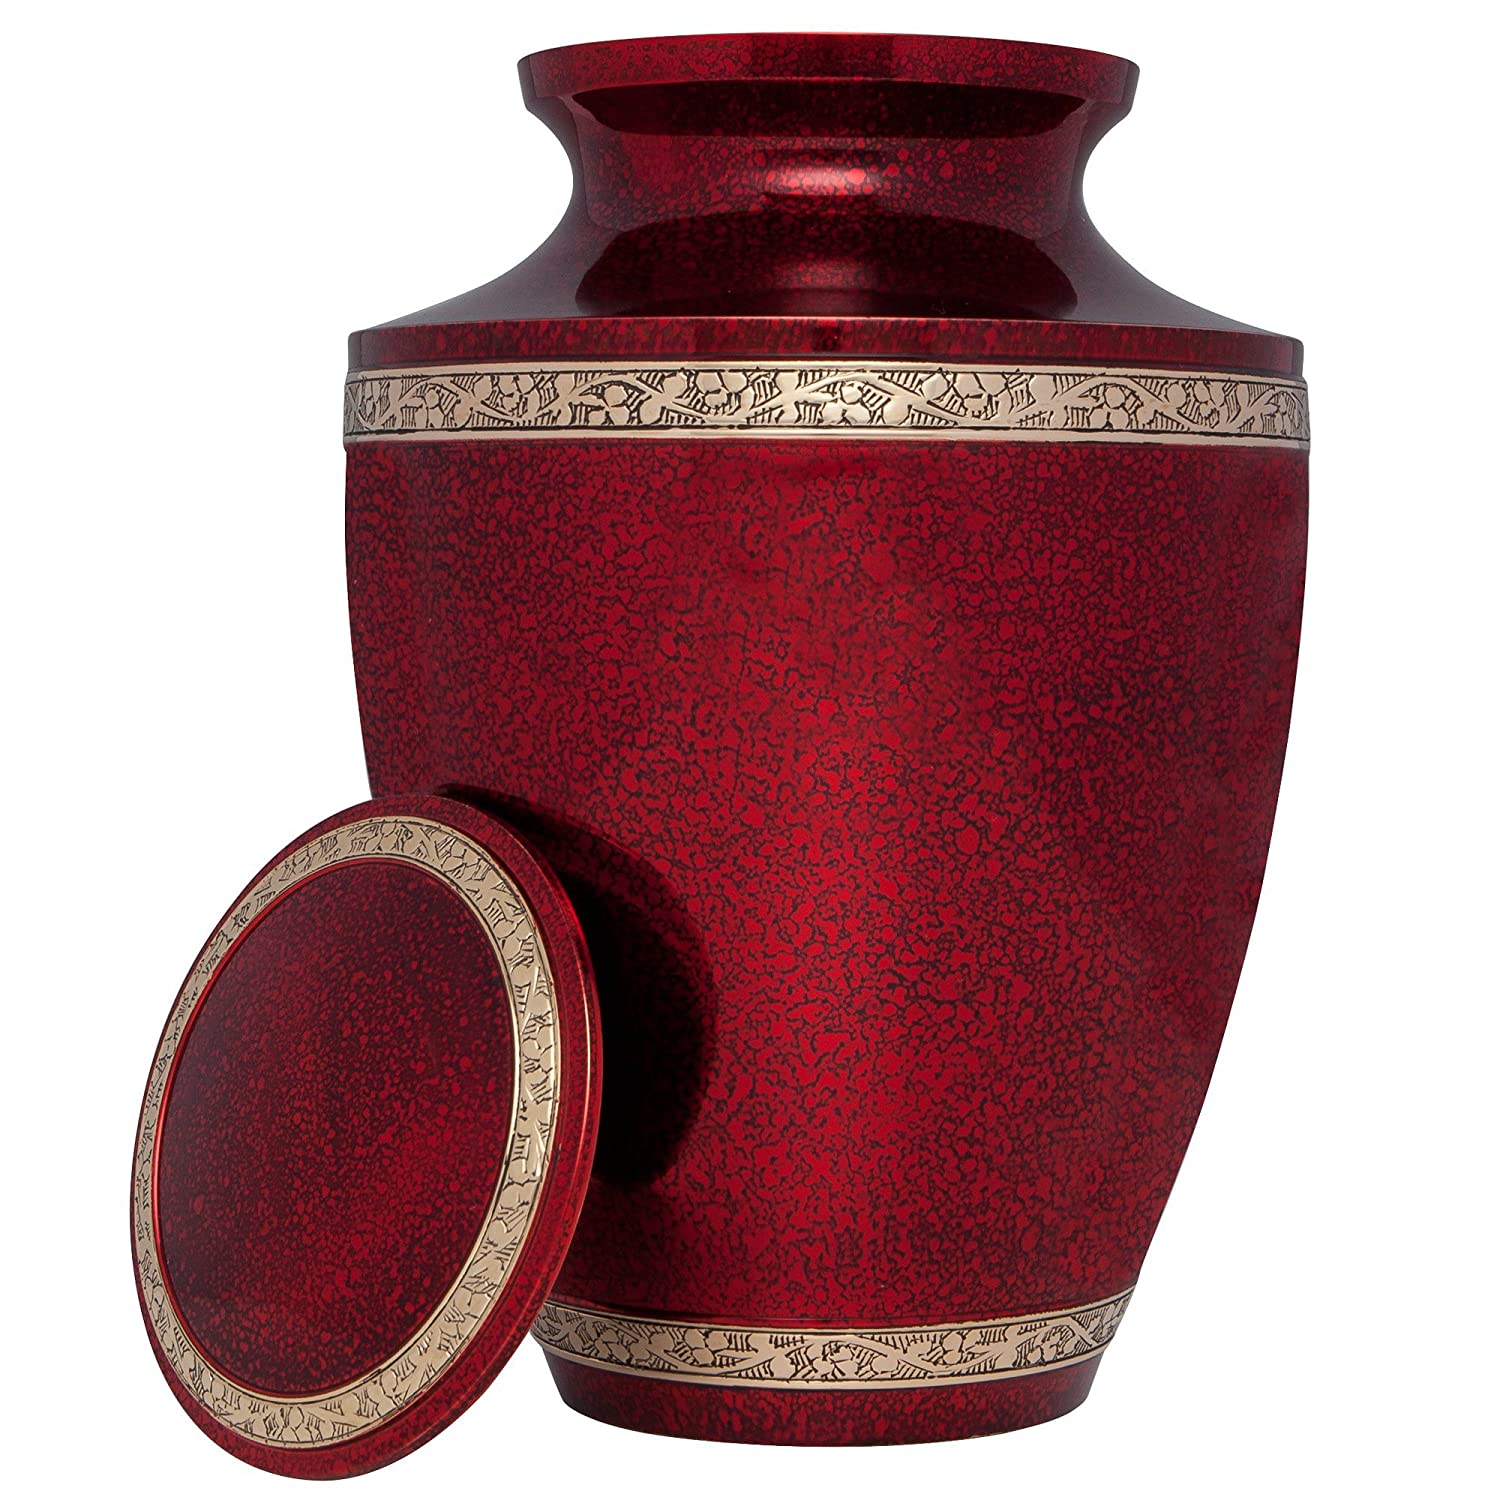 Liliane Memorials Glossy Red Funeral Cremation Urn Torino Model in Brass for Human Ashes Suitable for Cemetery Burial Fits Remains of Adults up to 200 lbs, Large 200 lb,